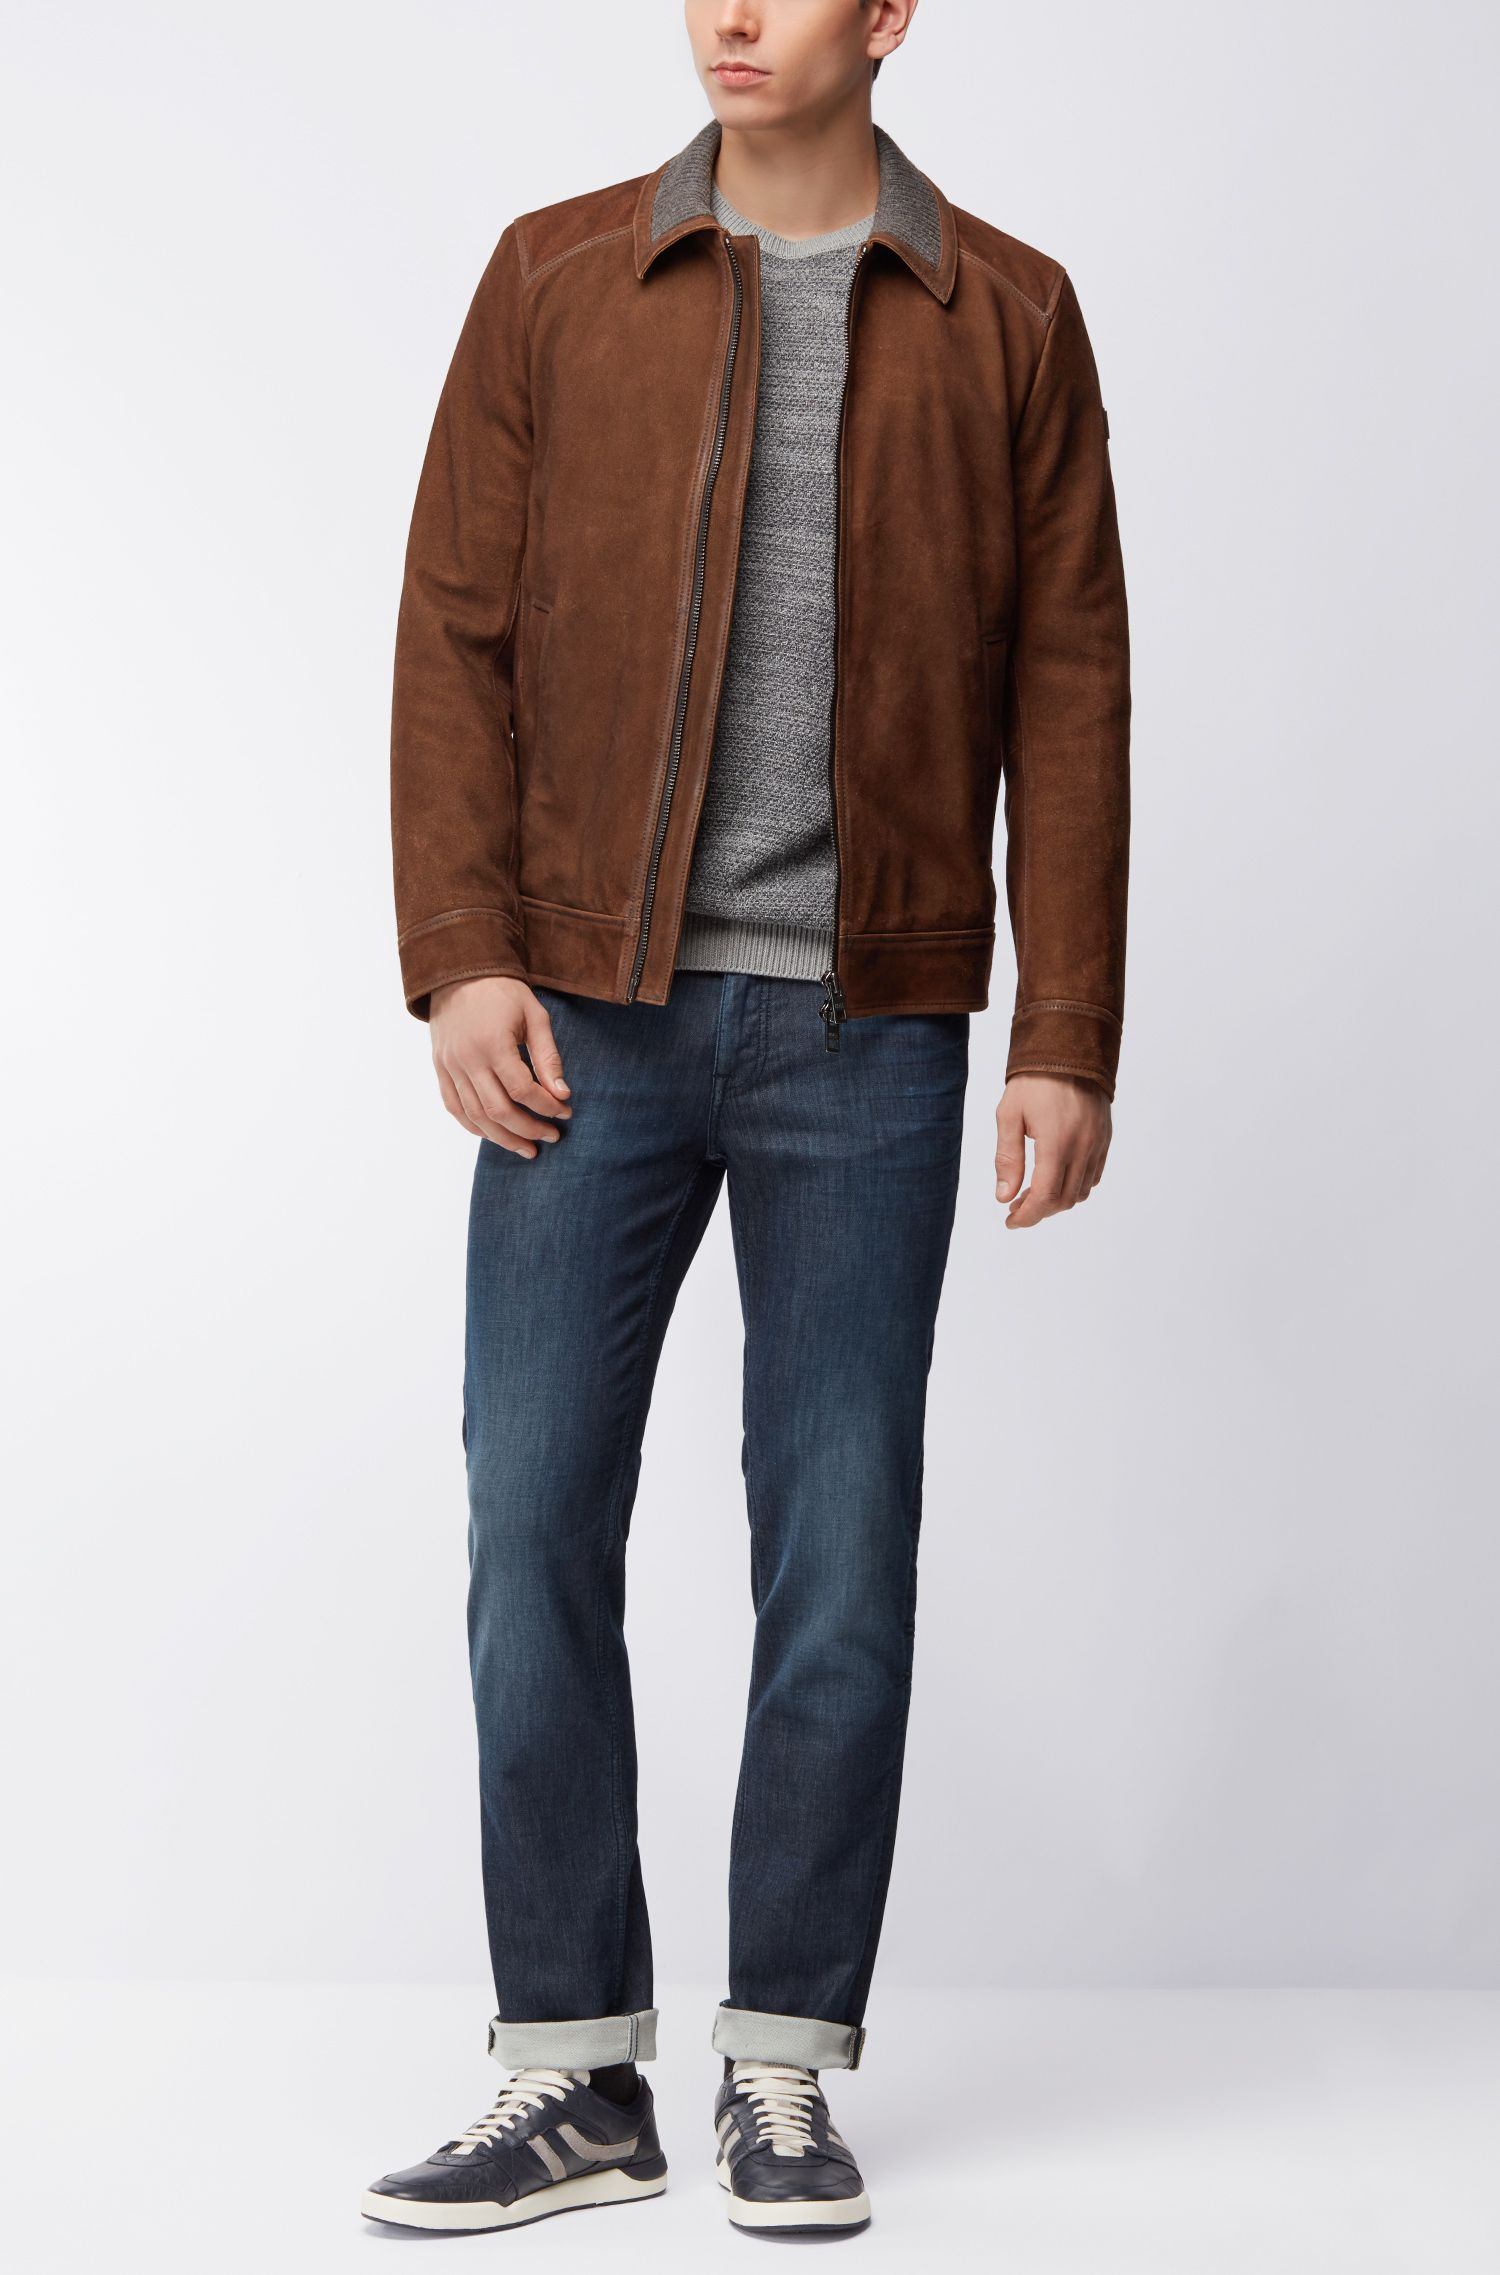 Goat Suede Leather Jacket | Jacien